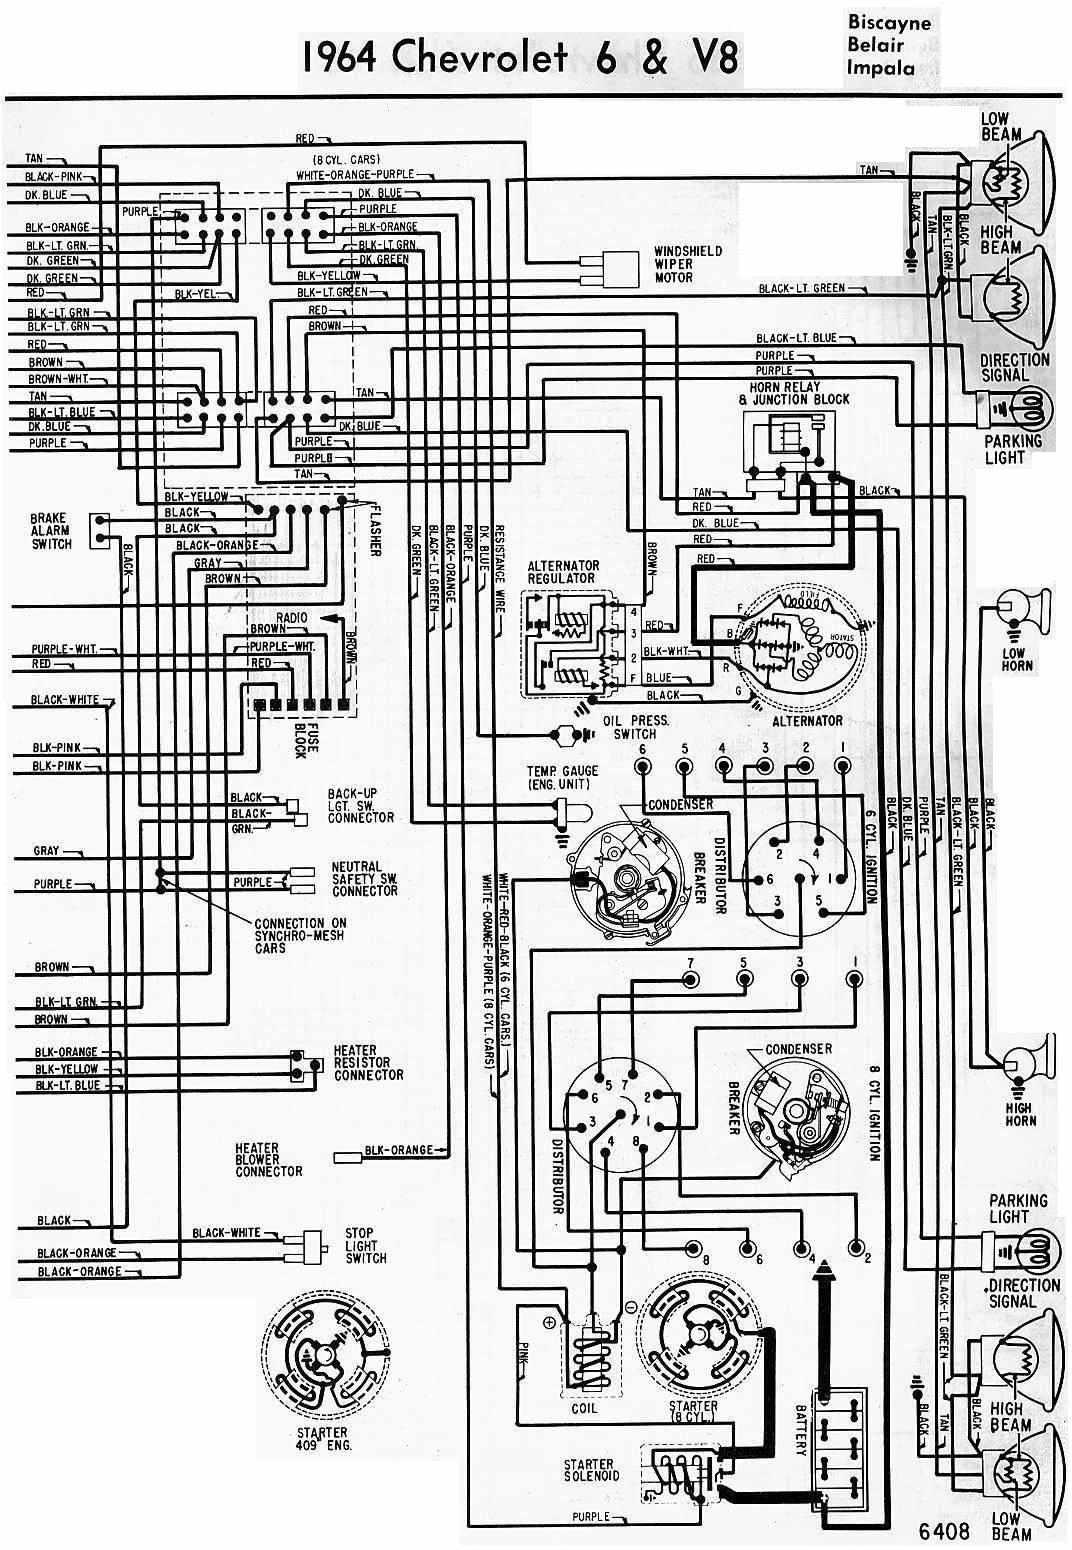 Electrical+Wiring+Diagram+Of+1964+Chevrolet+6+And+V8 1964 bel air wire diagram colors incorrect chevytalk free 1964 impala wiring diagram at fashall.co